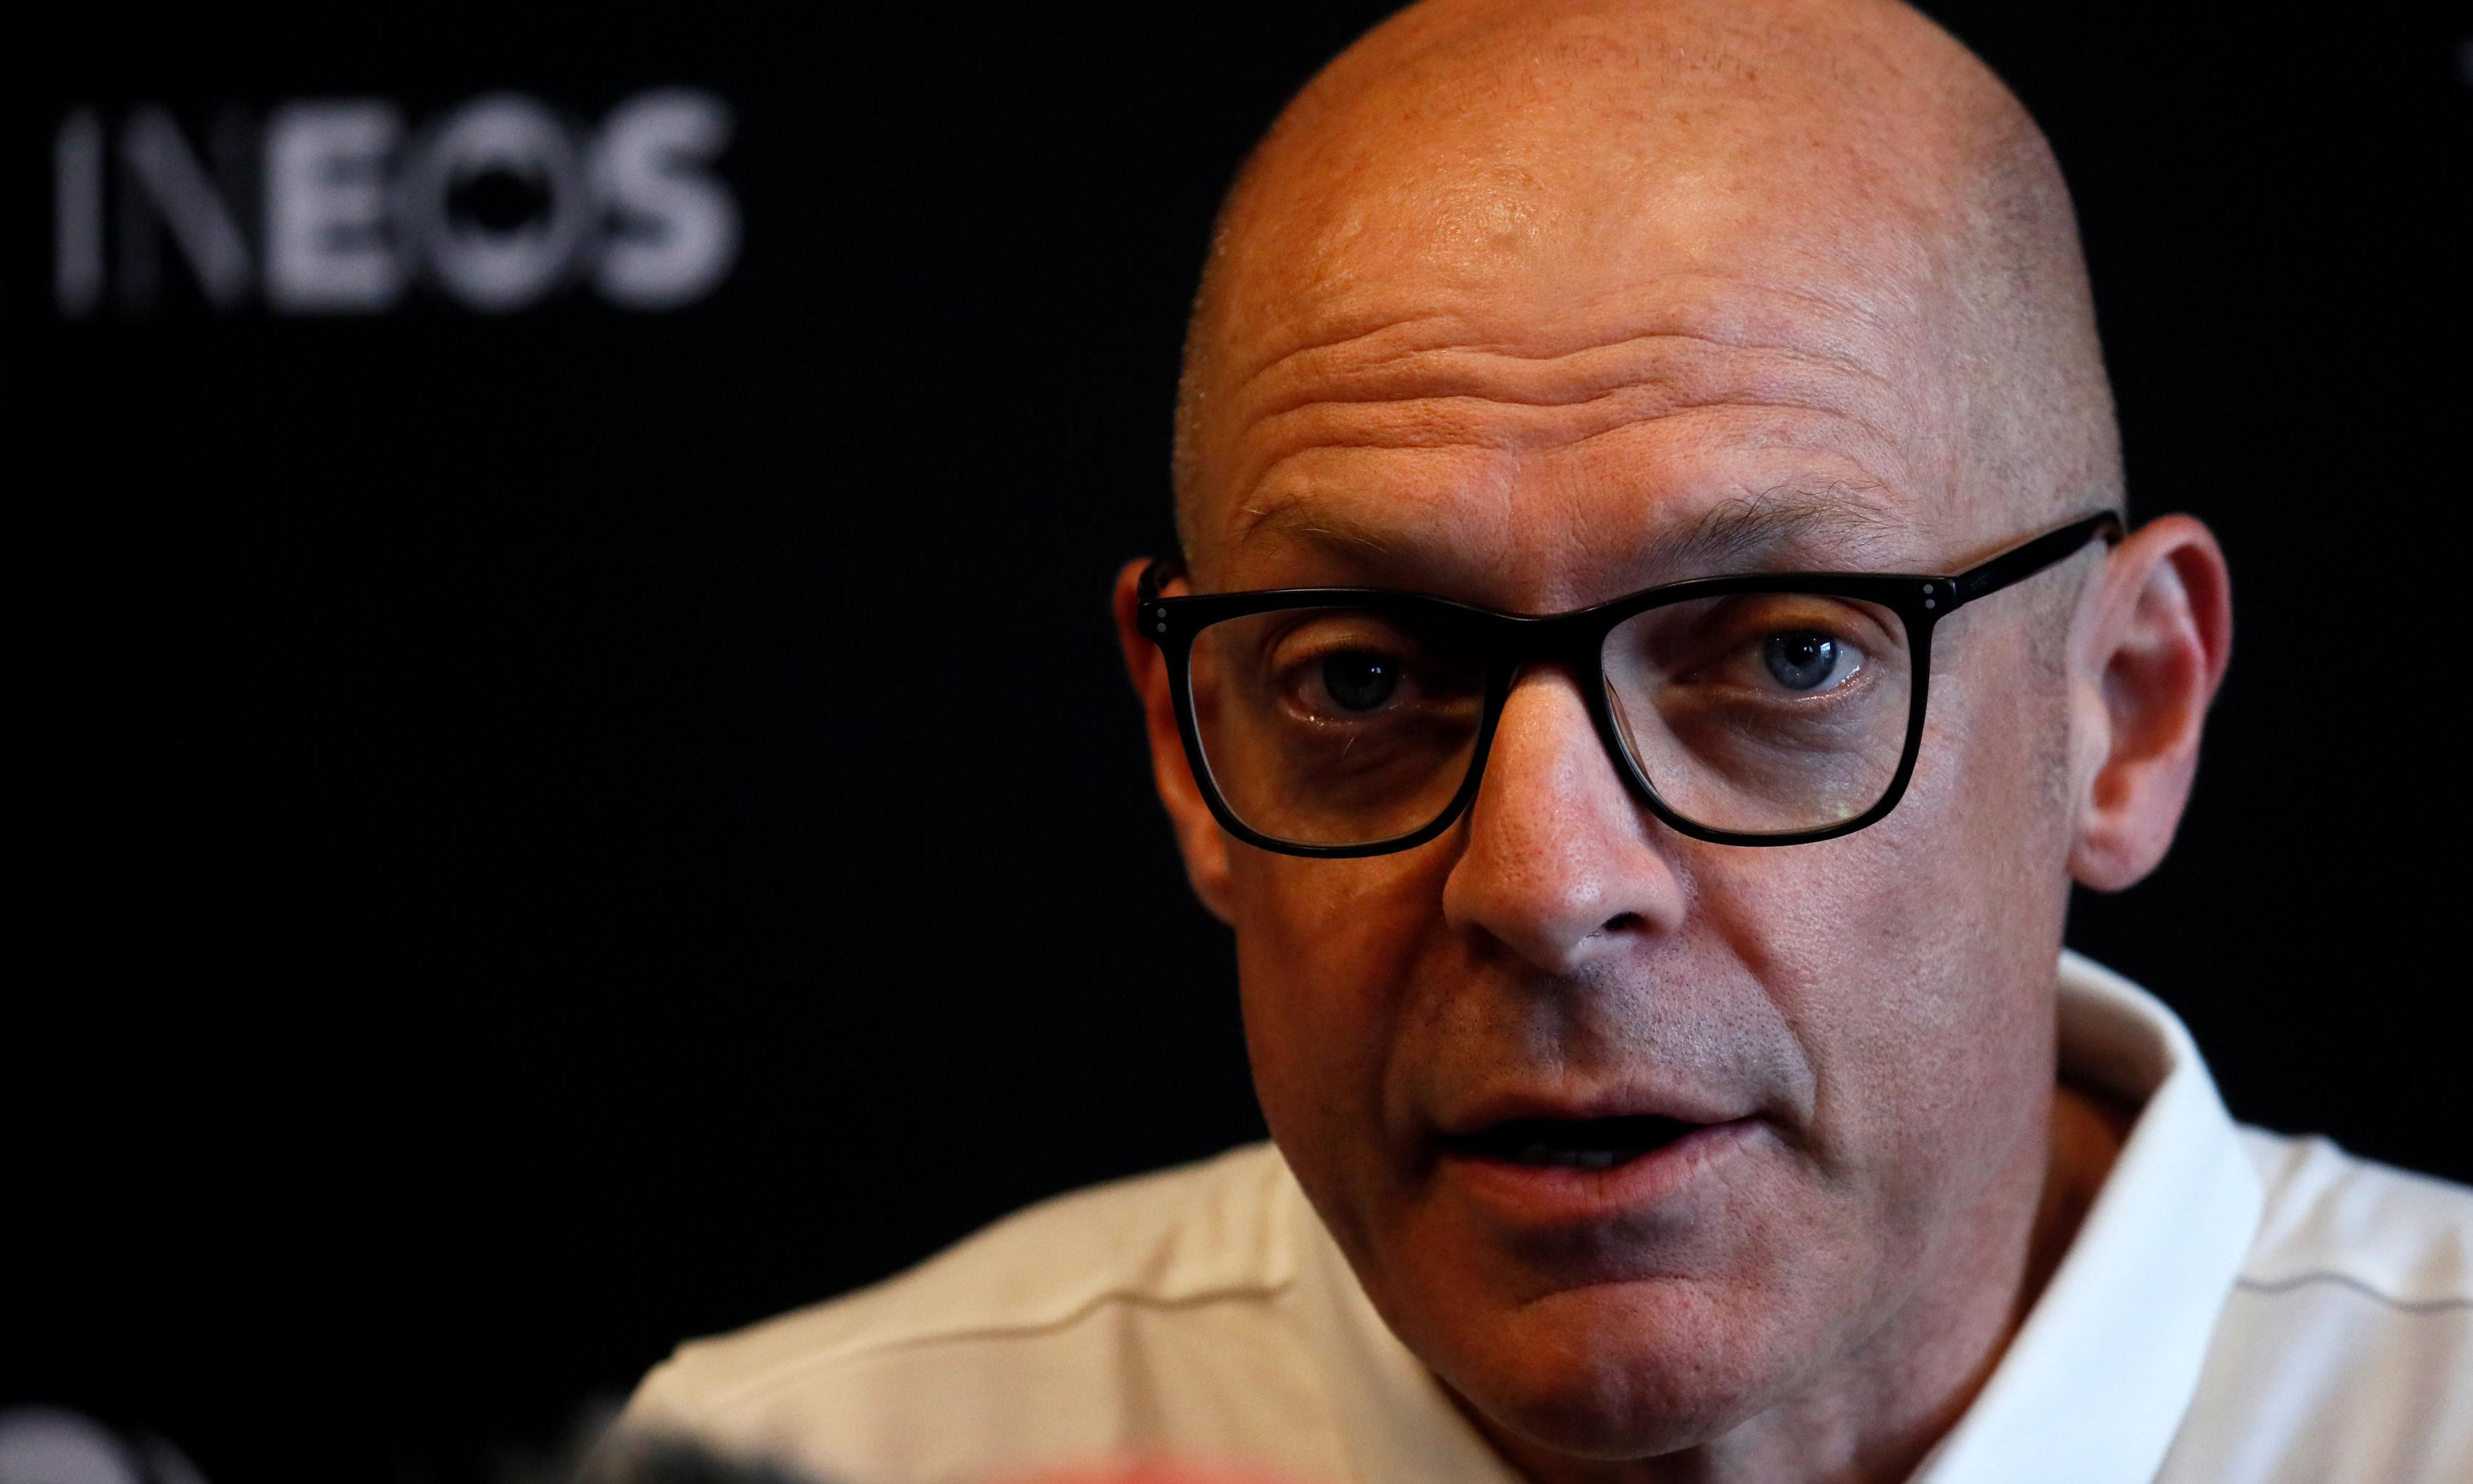 Dave Brailsford could be tempted by new Ineos role outside cycling